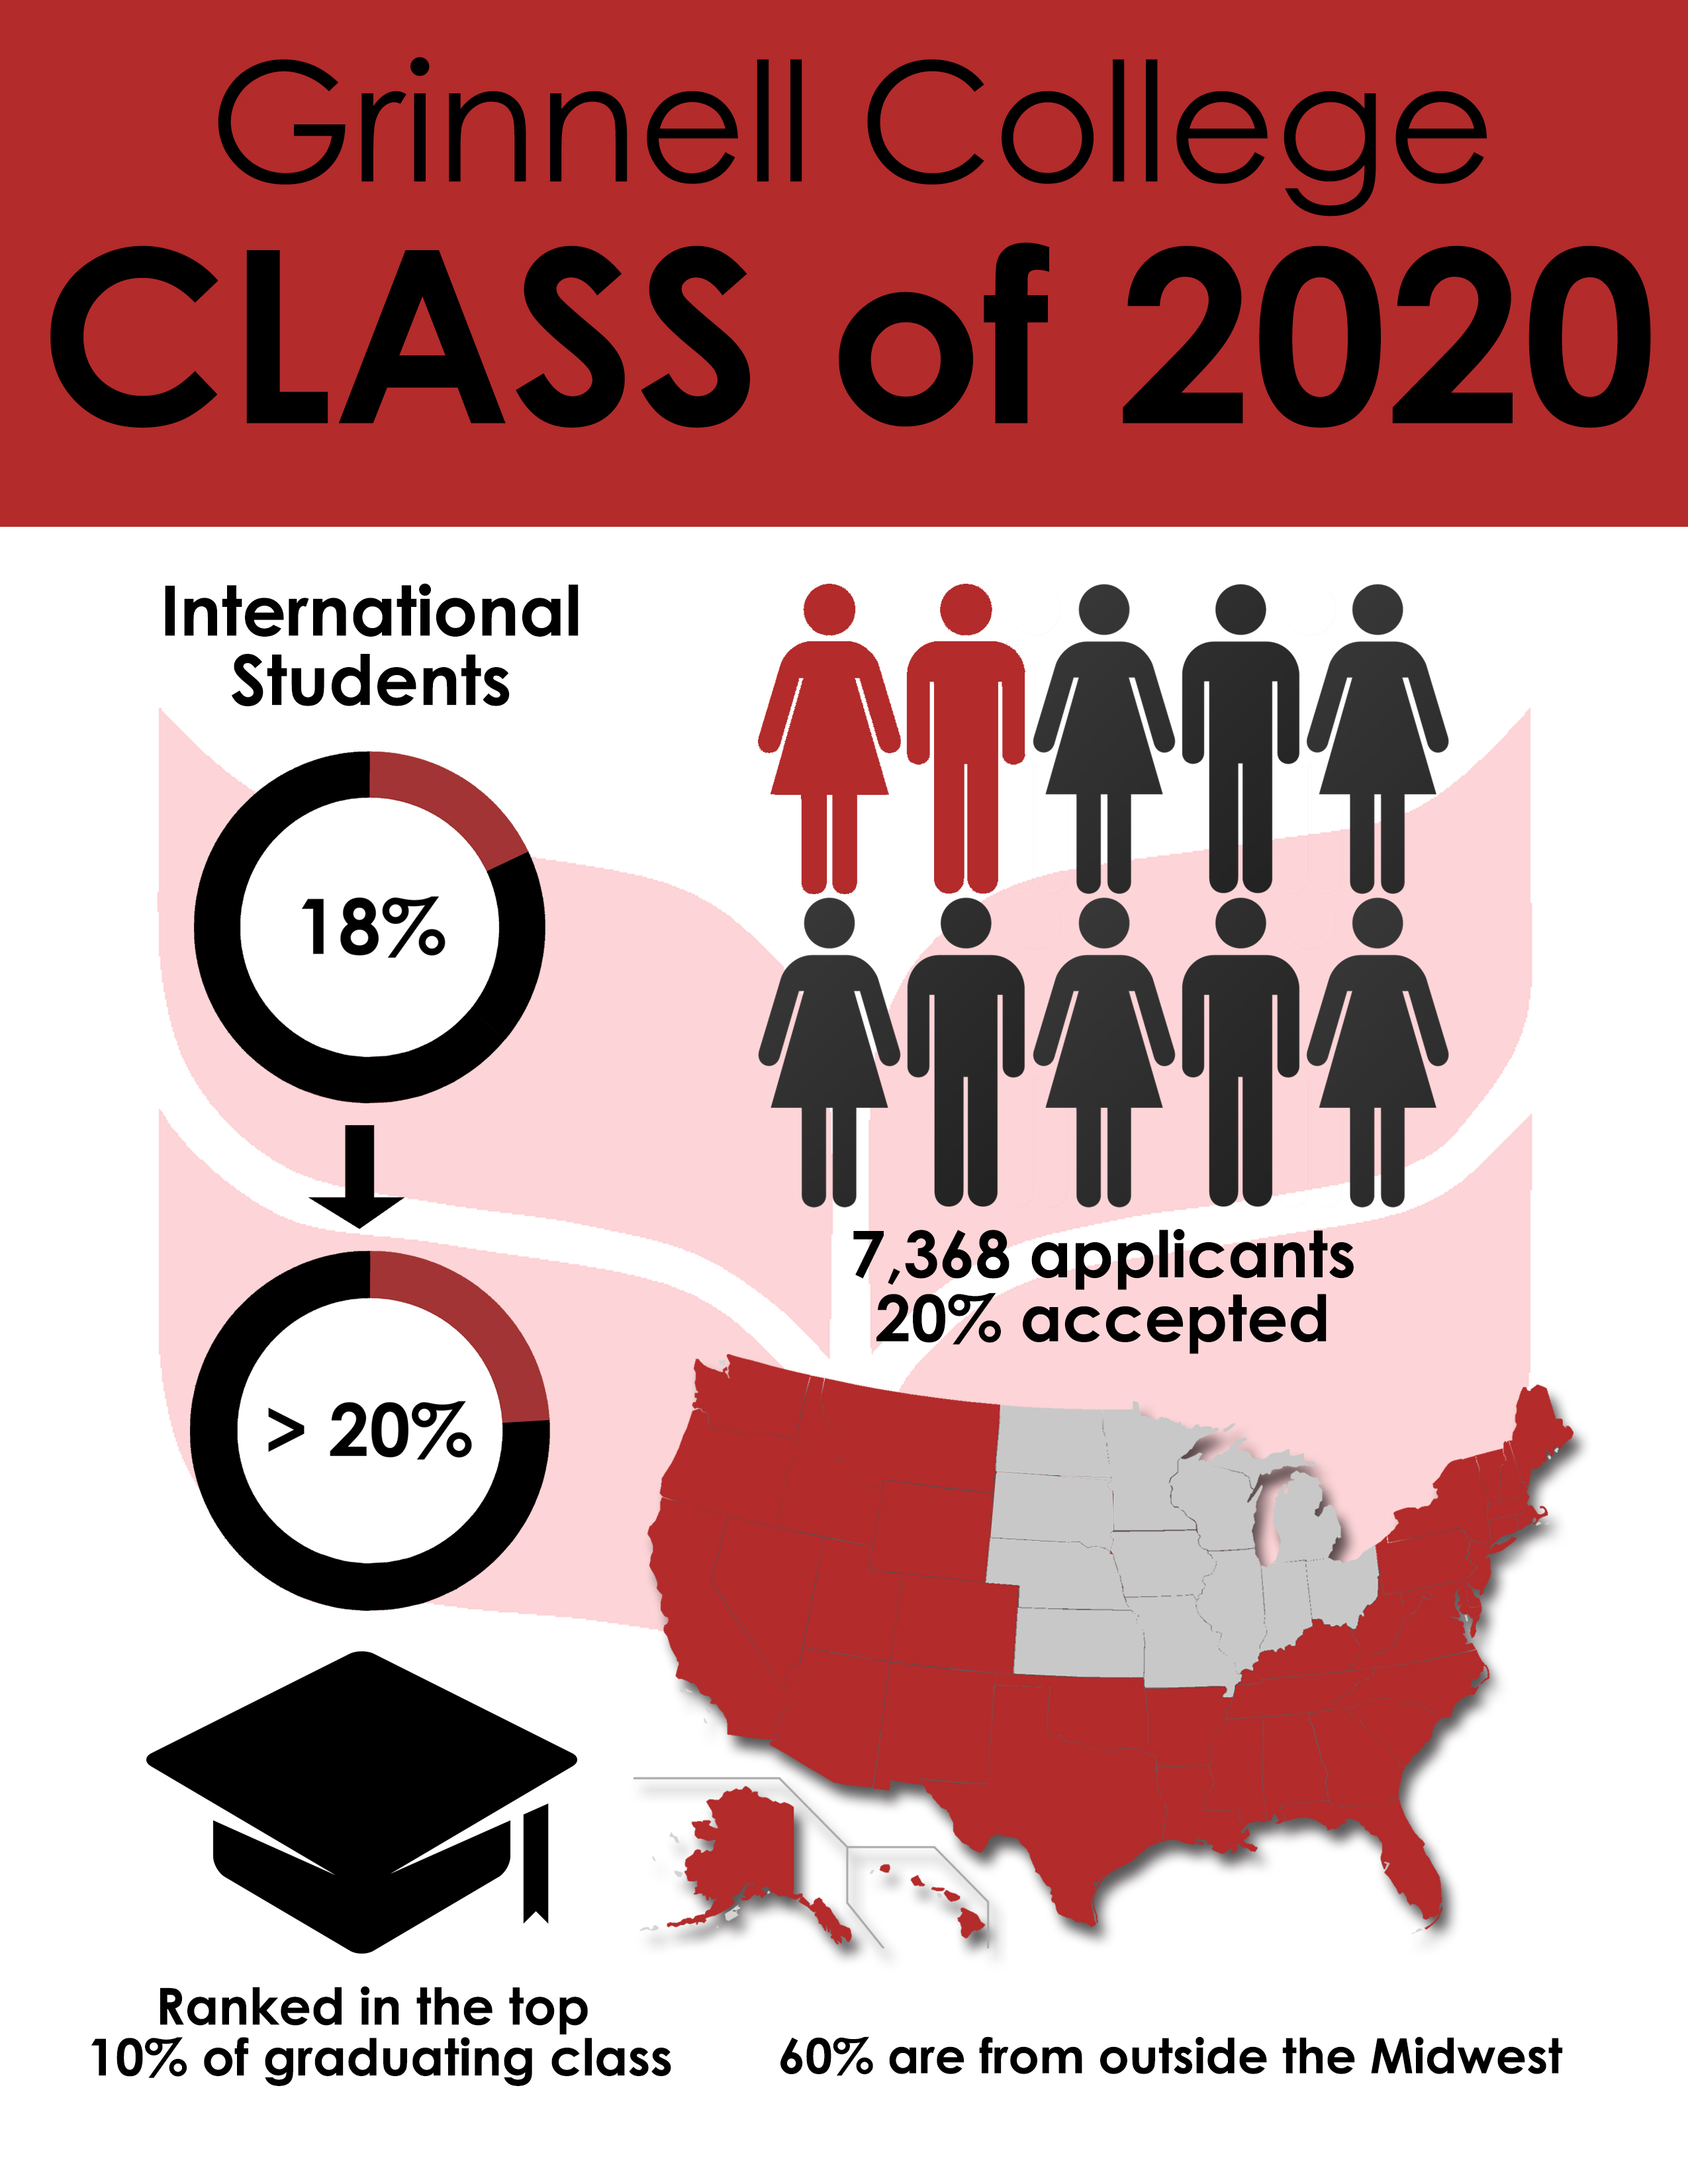 Grinnell College Class of 2020 Infographic